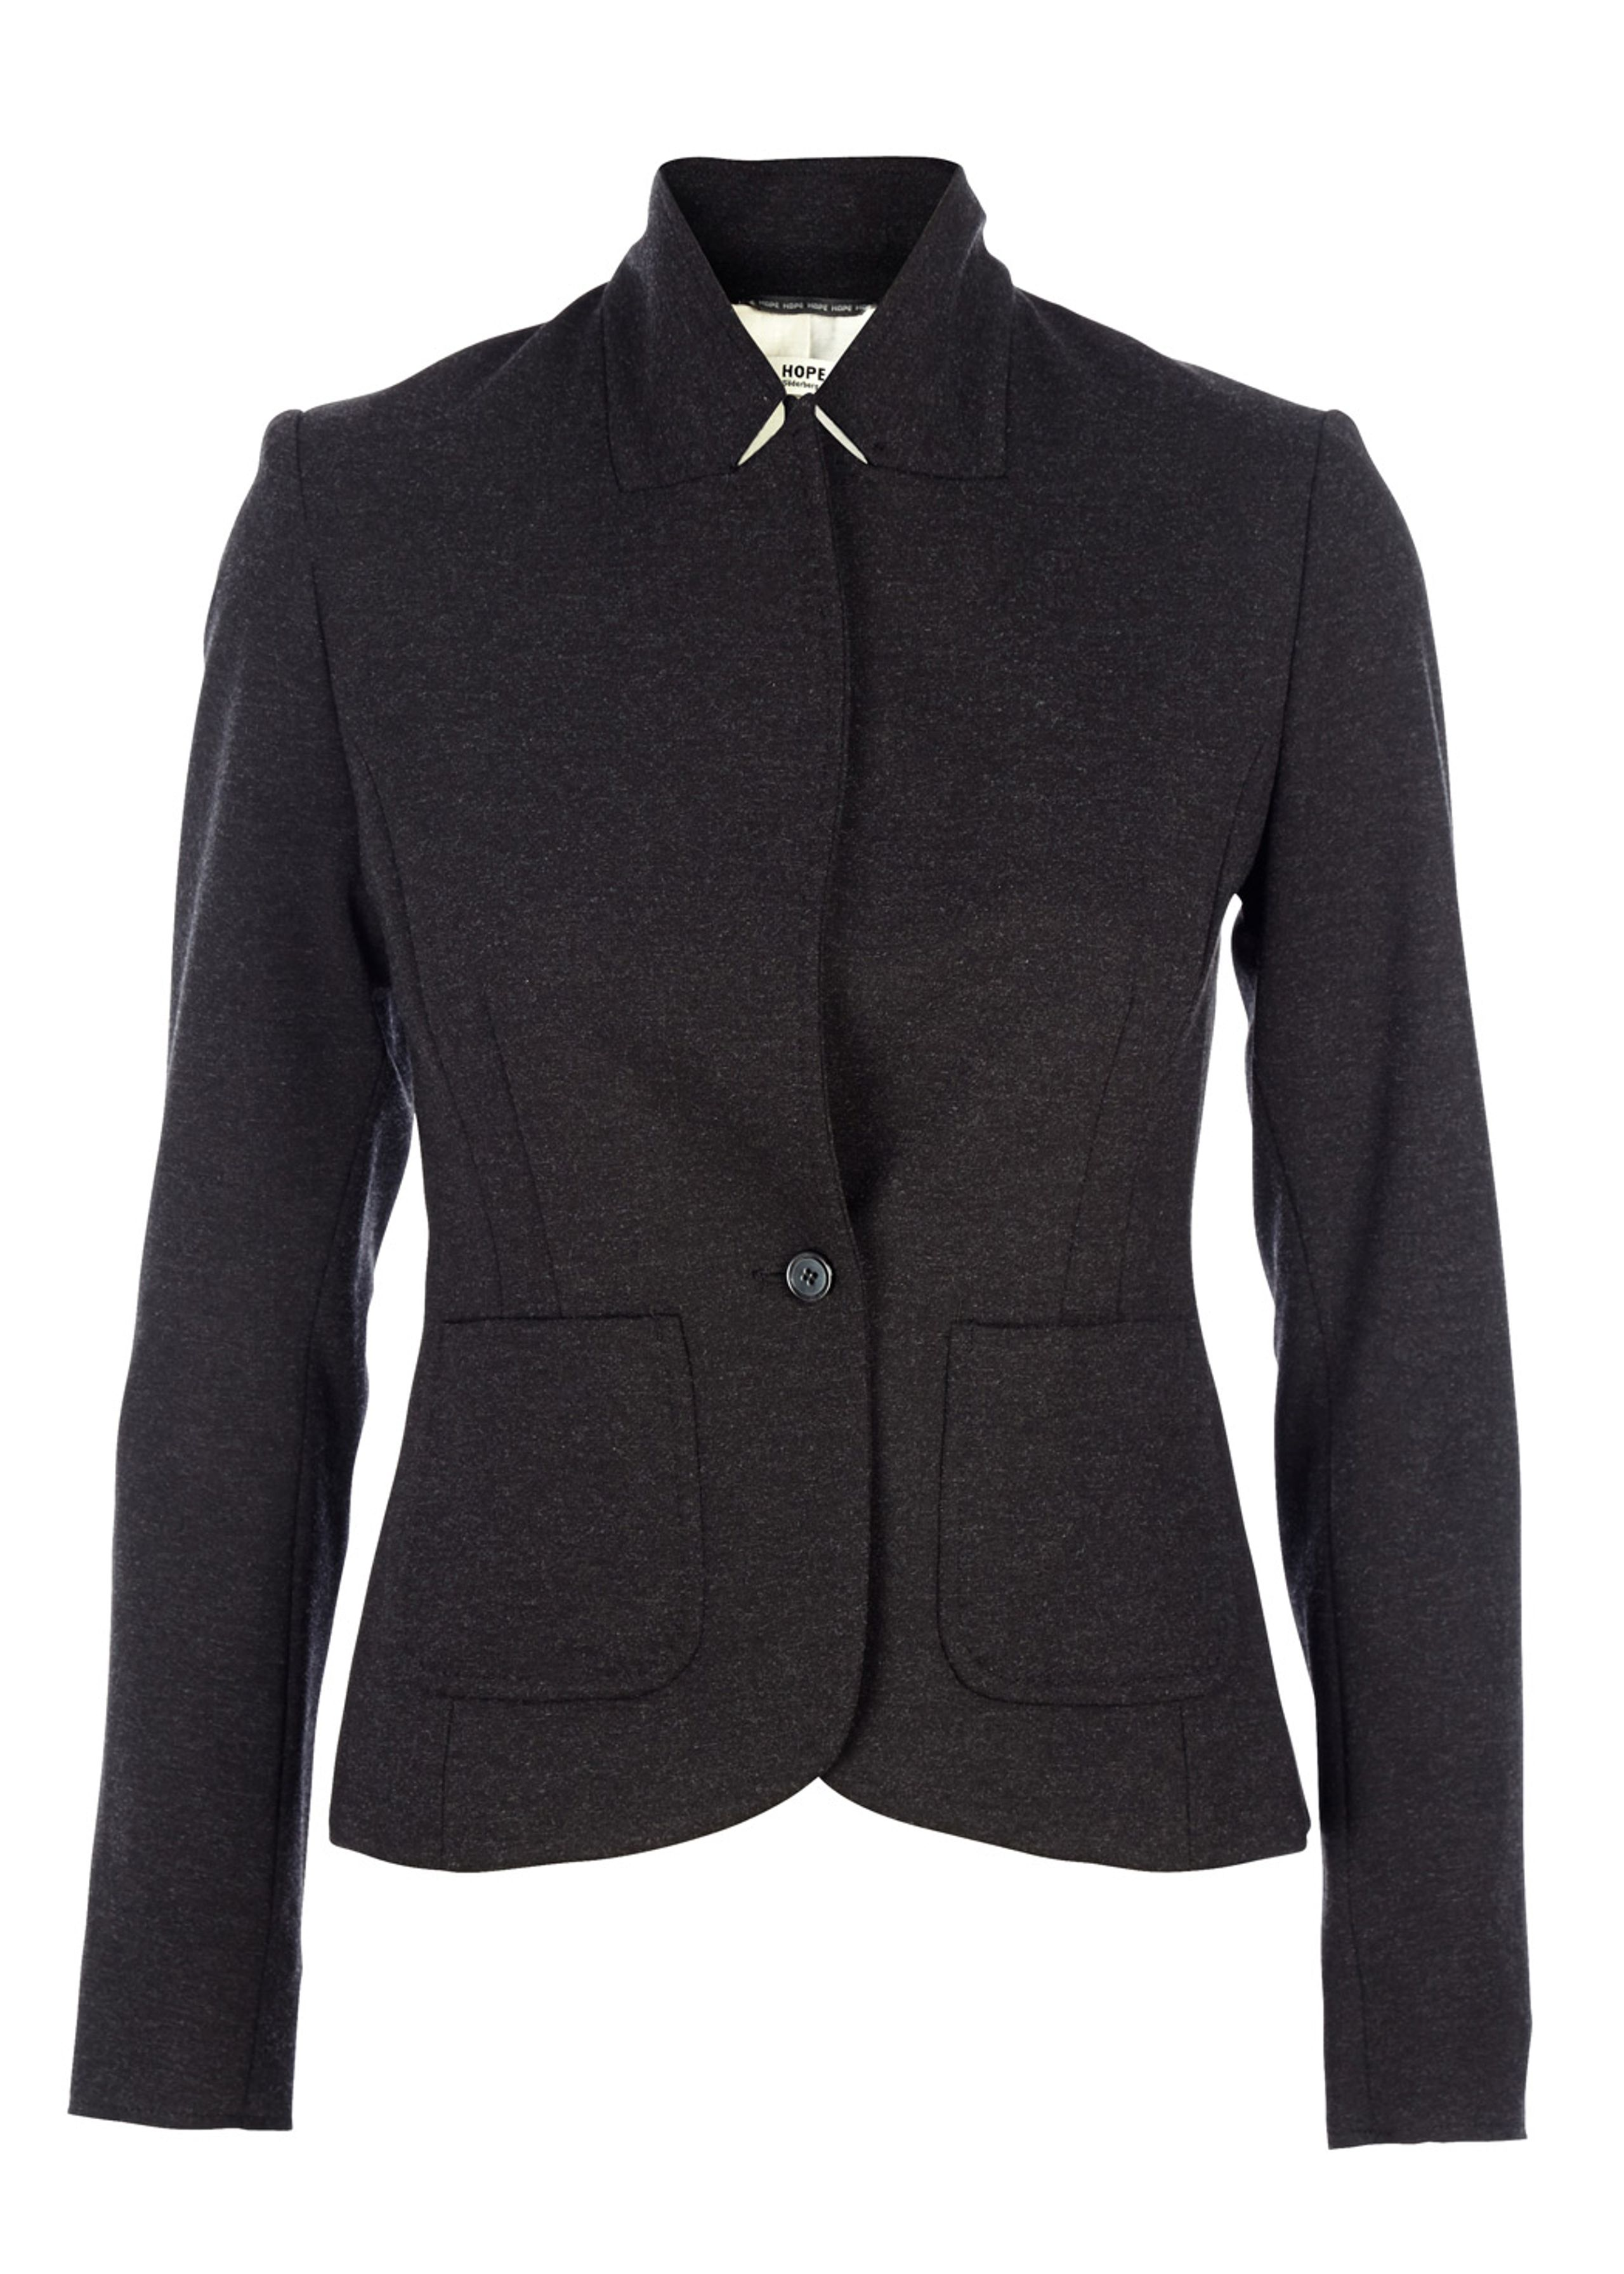 Judge knit blazer